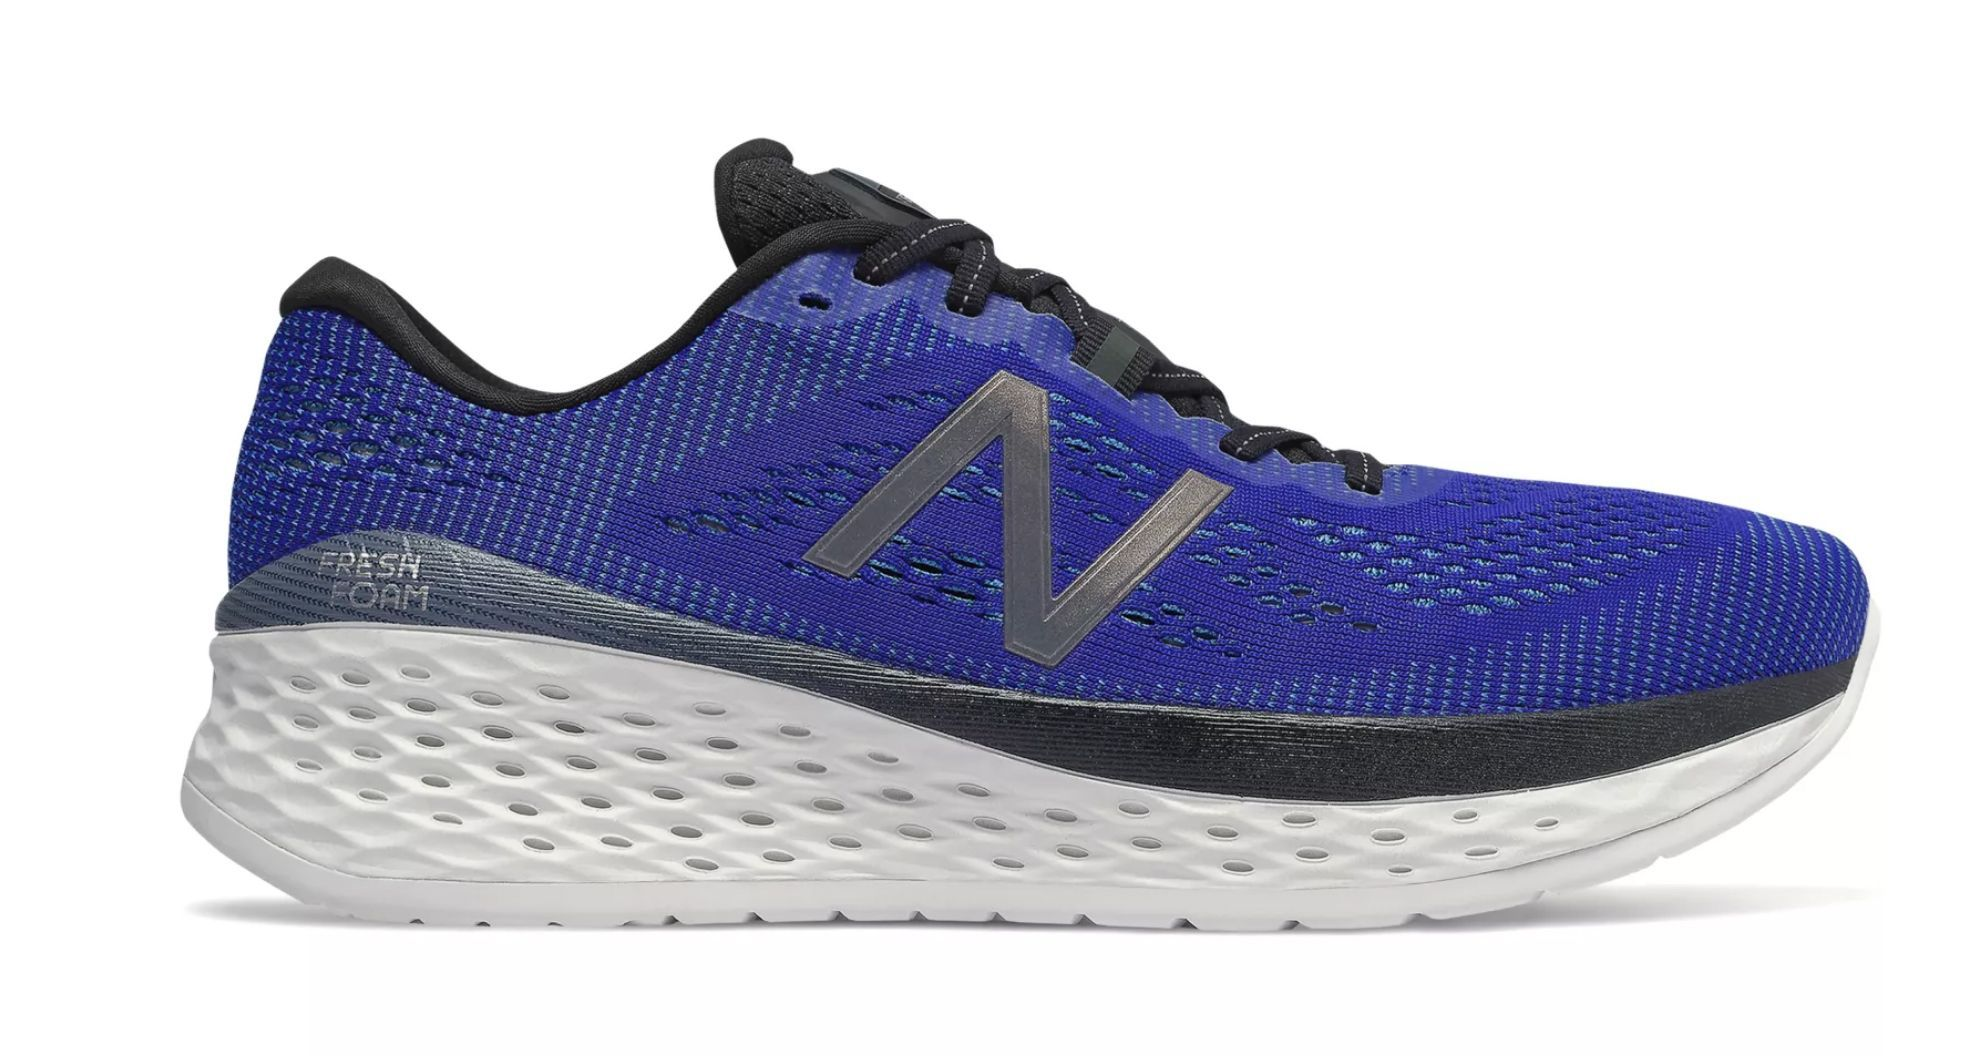 best new balance shoes for long distance running